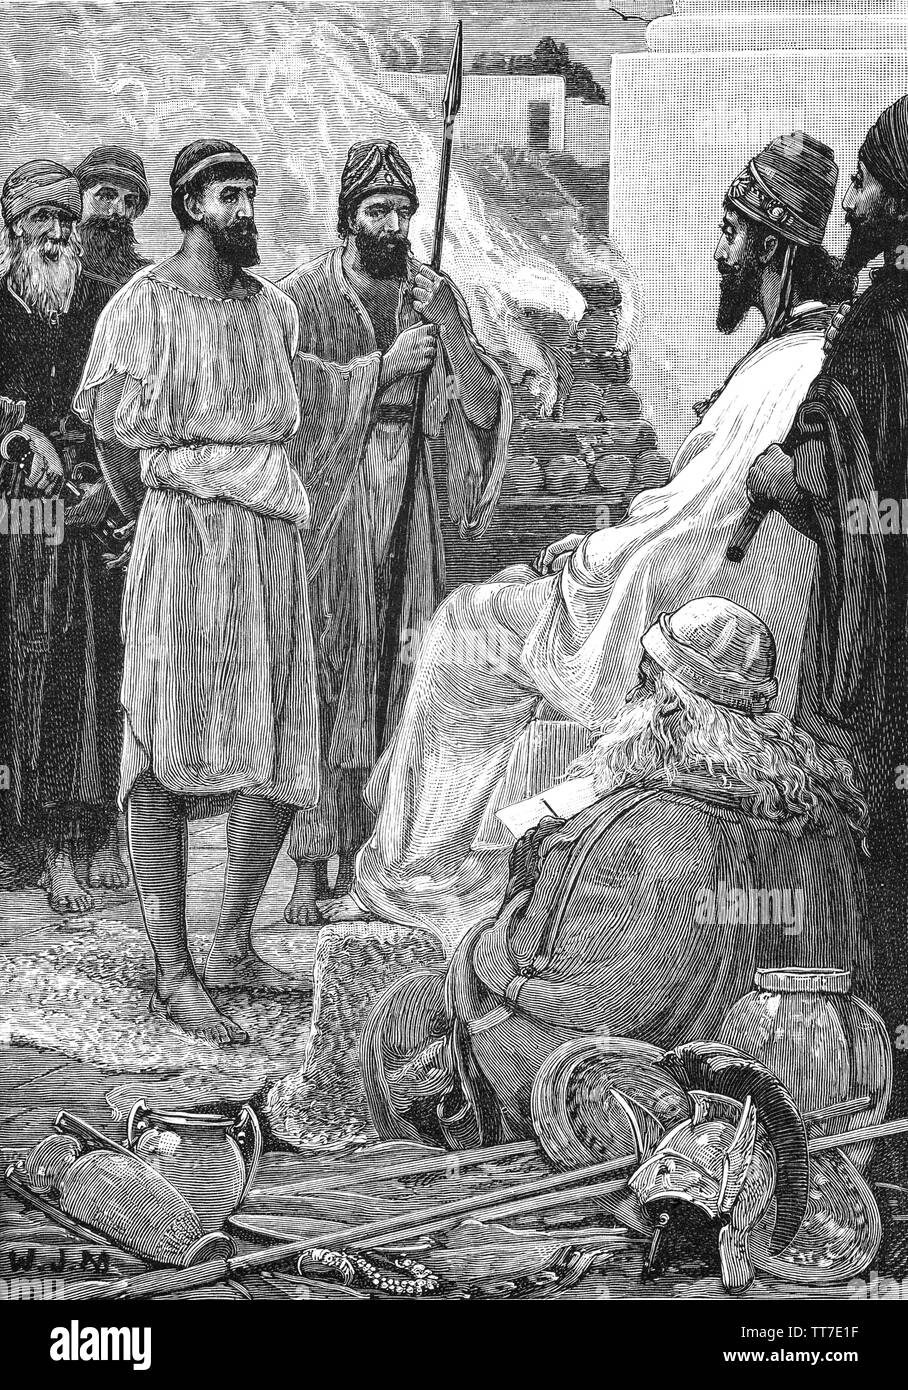 Croesus (595 BC - 546 BC) was the king of Lydia who reigned for 14 years: from 560 BC until his defeat by the Persian king Cyrus the Great in 546 BC.   The kingdom was ravaged and Croesus was captured and ordered to be executed. As Croesus is about to be burned on a pyre, he cries out the prophet Solon's name. Cyrus stops to hear what Croesus has to say. Croesus relates Solon's story to about great wealth to Cyrus, who is moved by the notion that Fate can bring misery to a rich man and happiness to a poor man.  Croesus is freed and the emperor and the king become good friends. - Stock Image